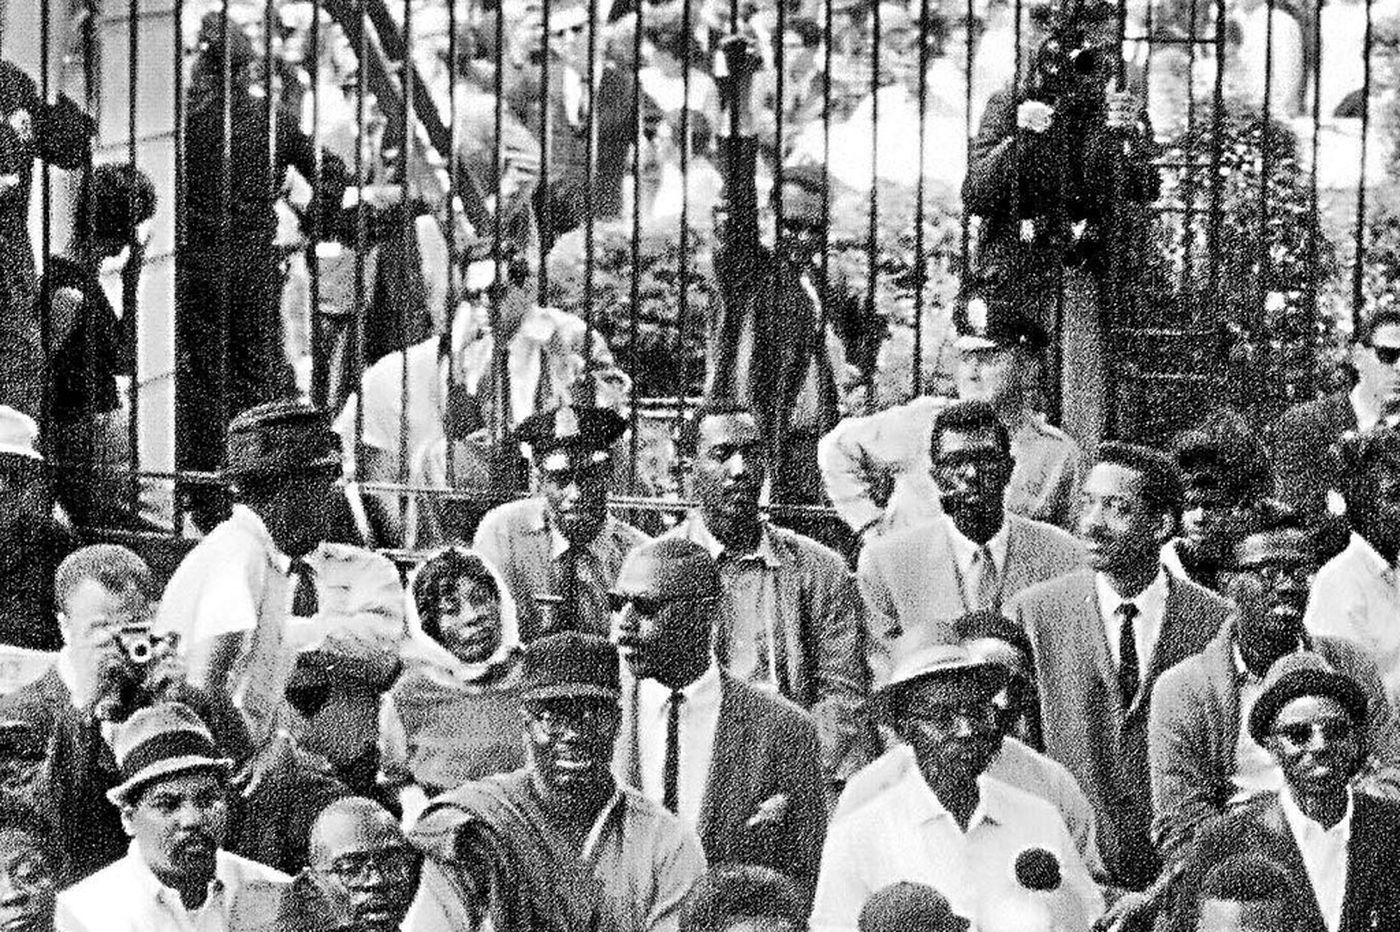 In the year of Selma, Phila. had its own rights march